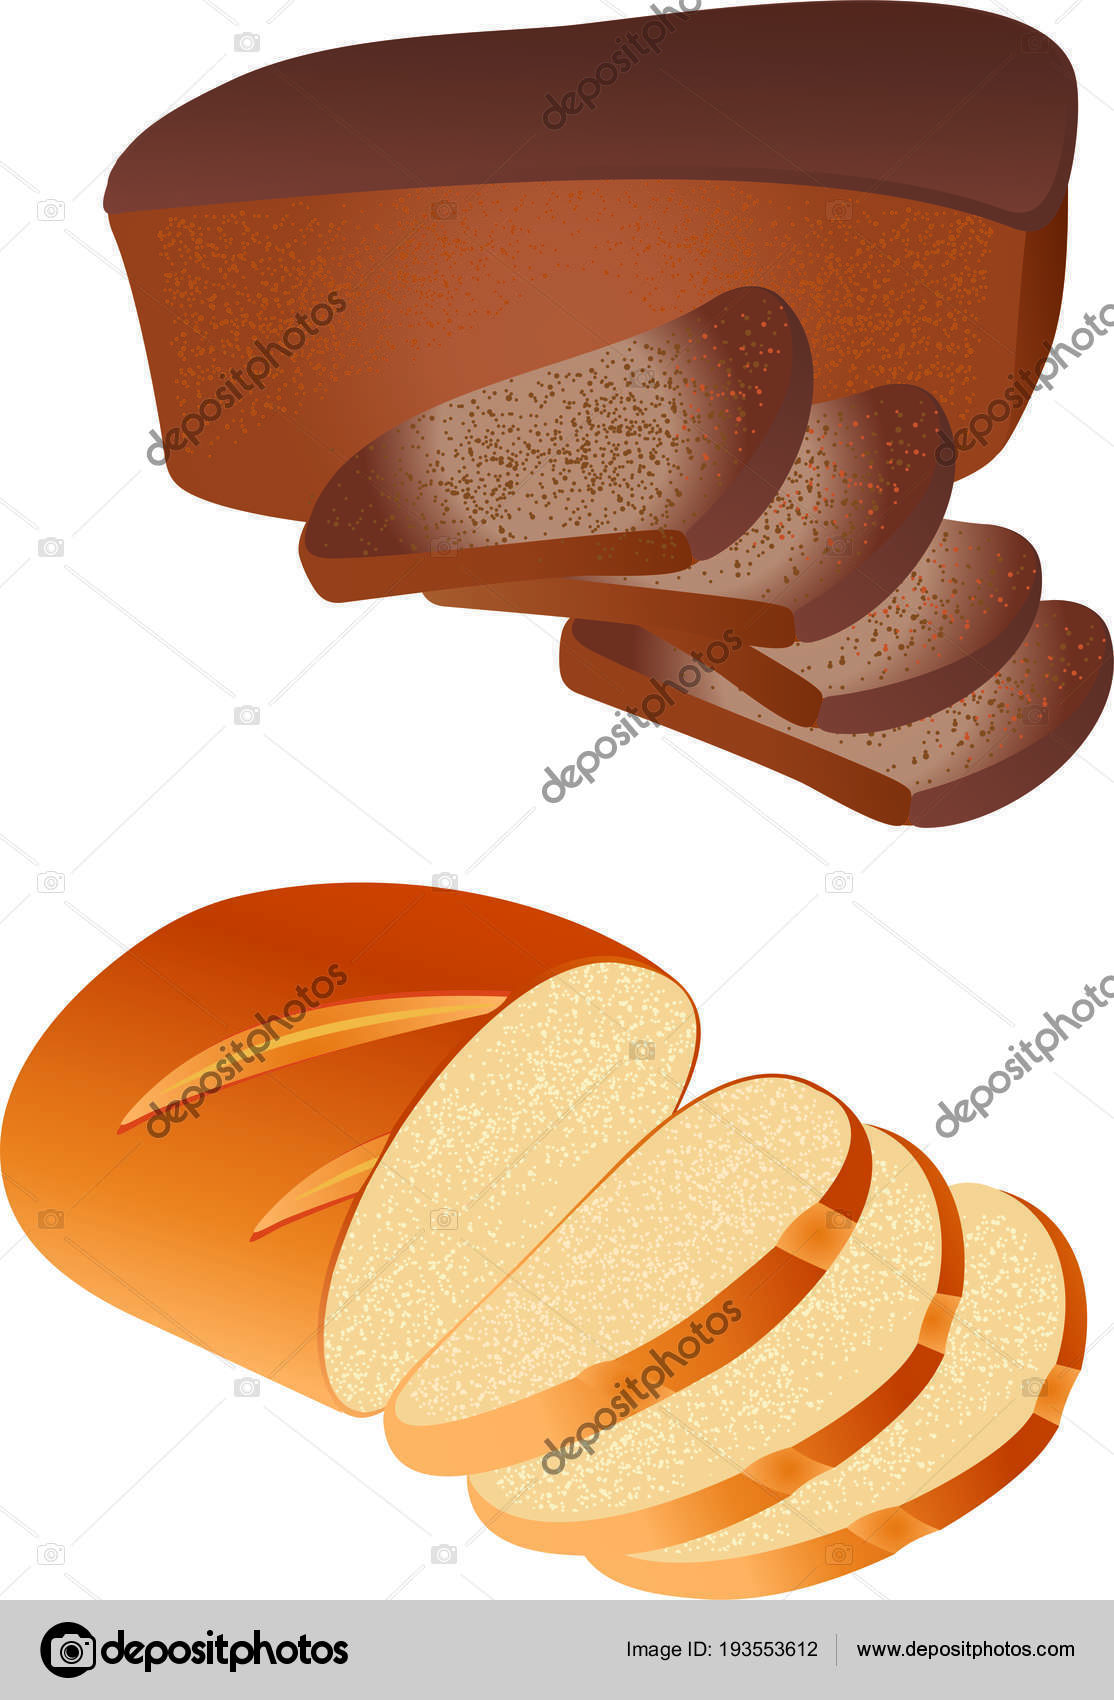 Bread Food Variety Brick Butterbrot Baton Or Baguette Theme For